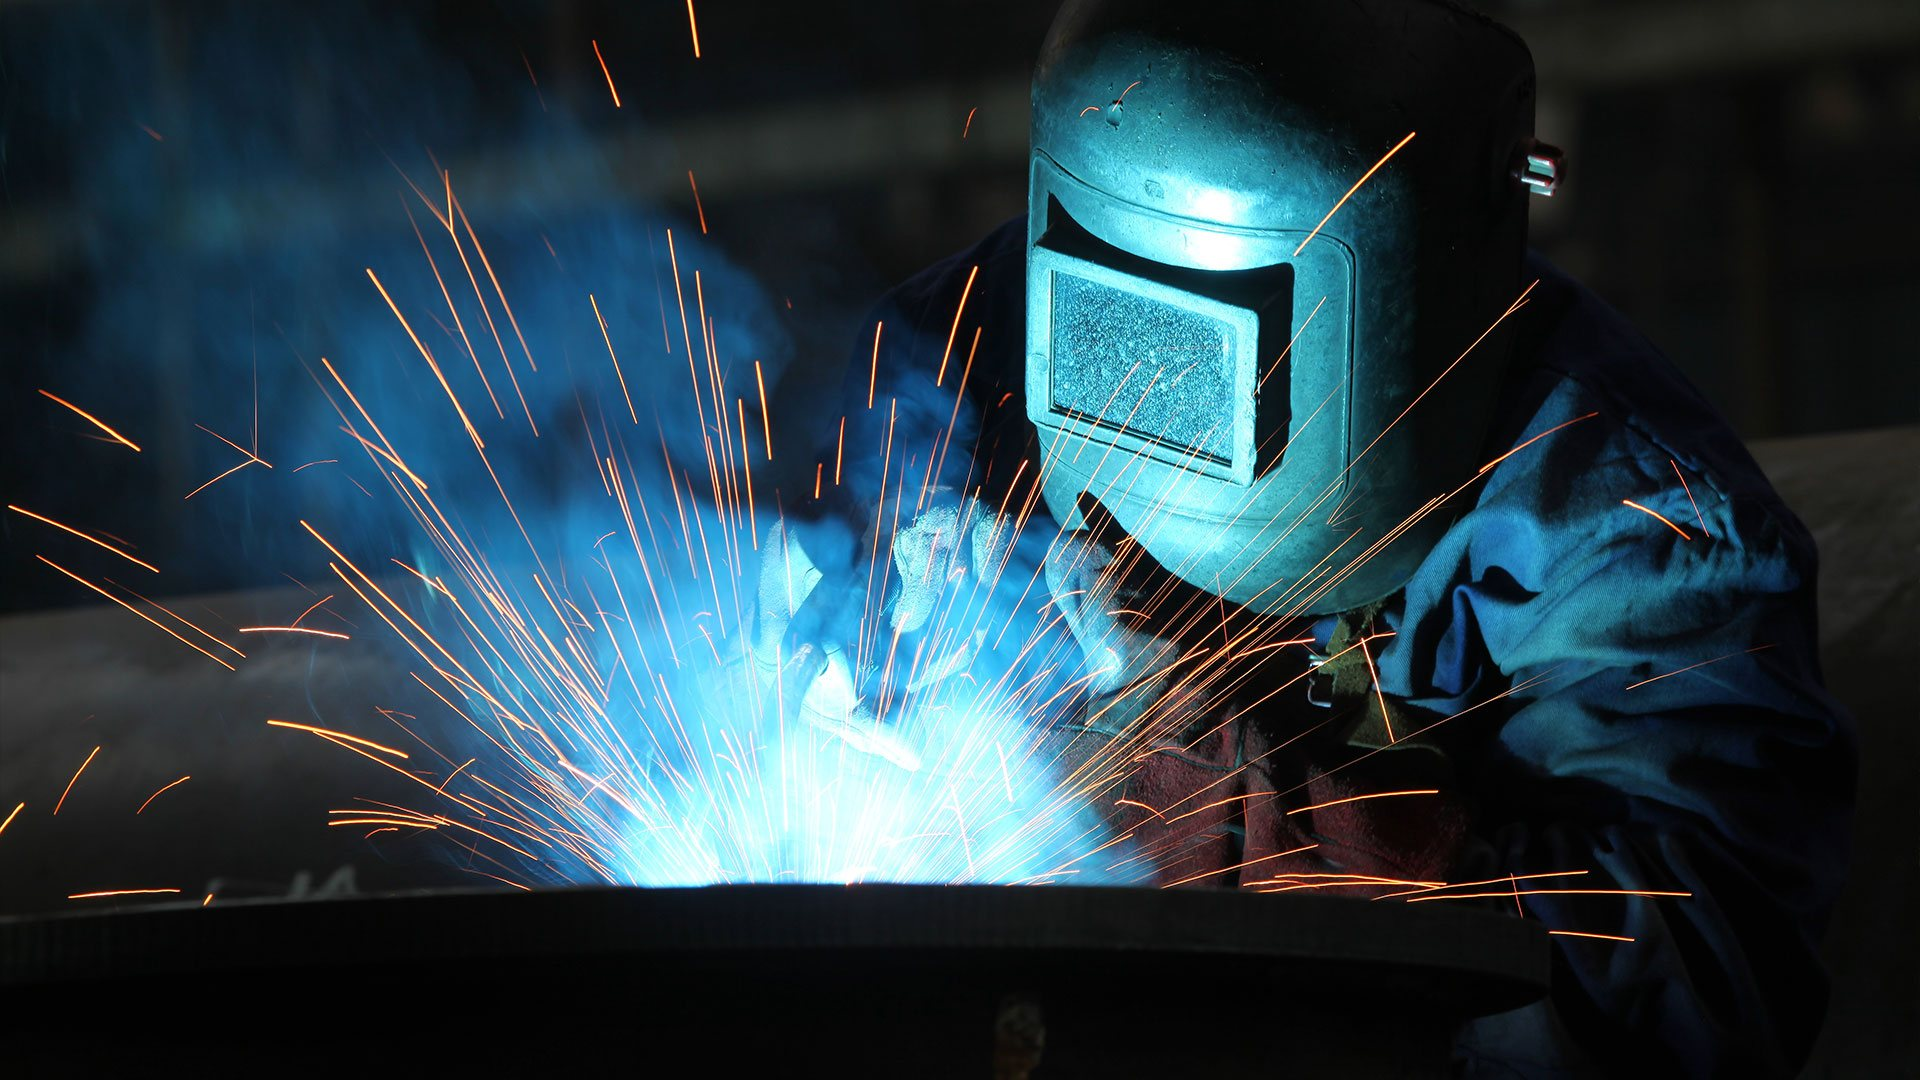 Richmond District Plasma Cutting Systems, Compressed Air Filters and Automated Plasma Cutting